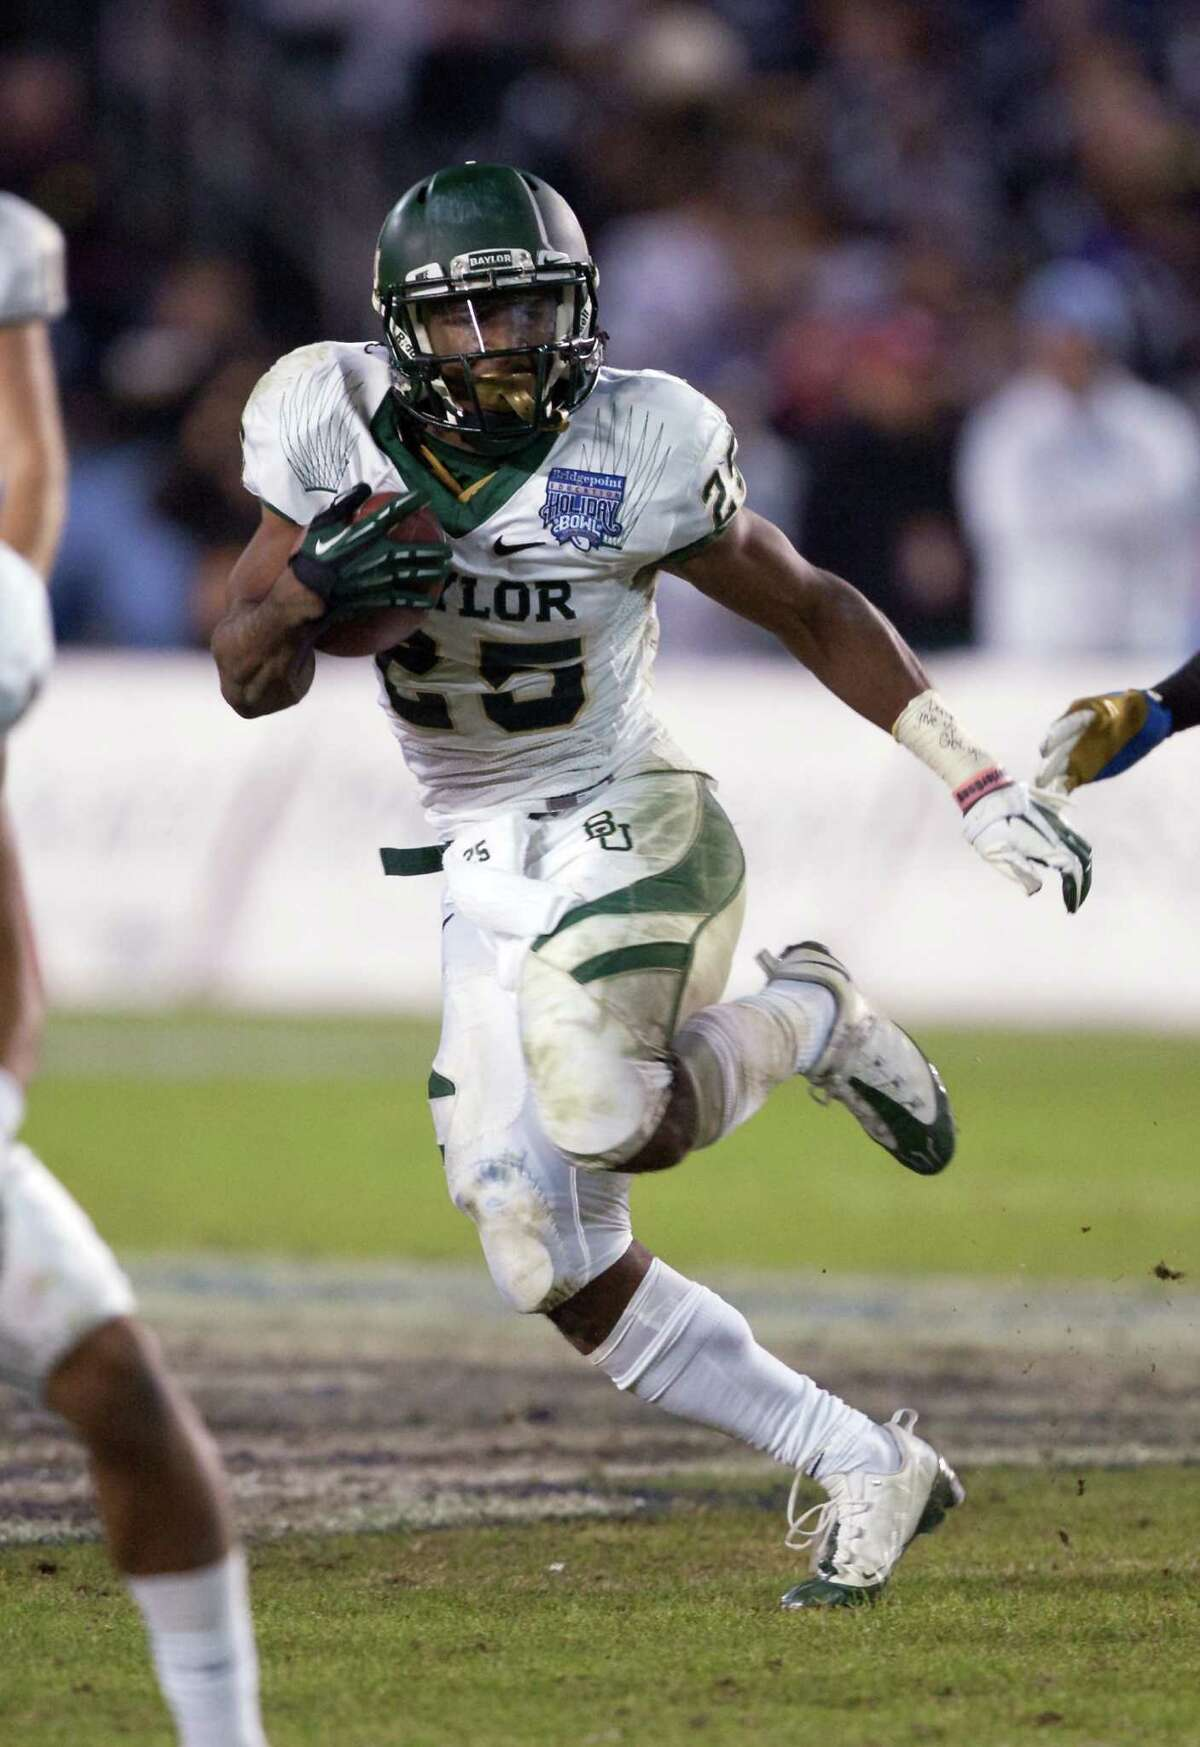 OFFENSIVE PLAYER OF THE YEAR: Baylor RB Lache SeastrunkPHOTO: Seastrunk runs with the ball against UCLA in the Bridgepoint Education Holiday Bowl at Qualcomm Stadium on Dec. 27, 2012, in San Diego, Calif.